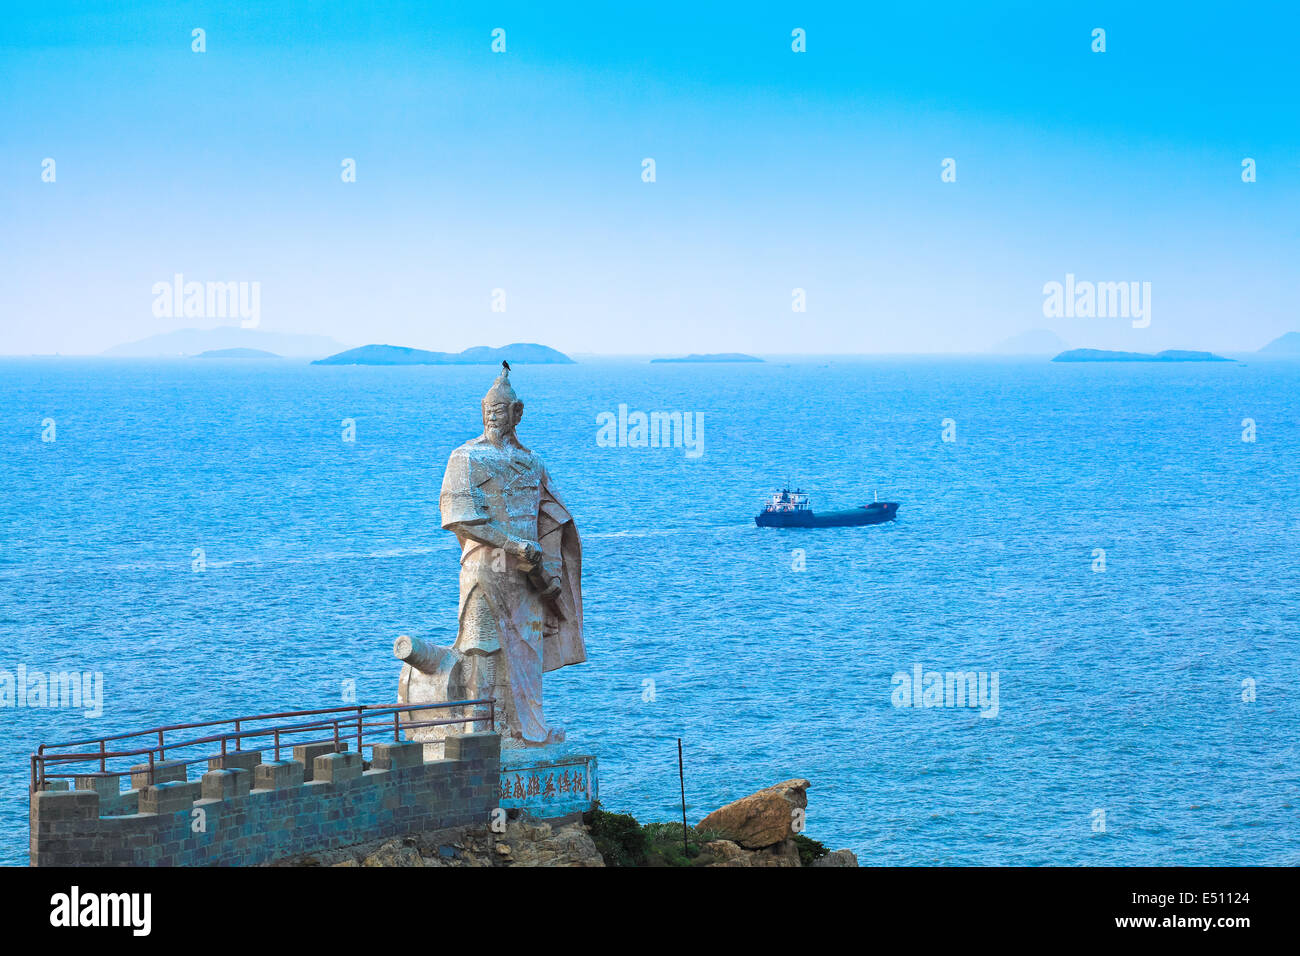 chinese national hero statue in the sea - Stock Image